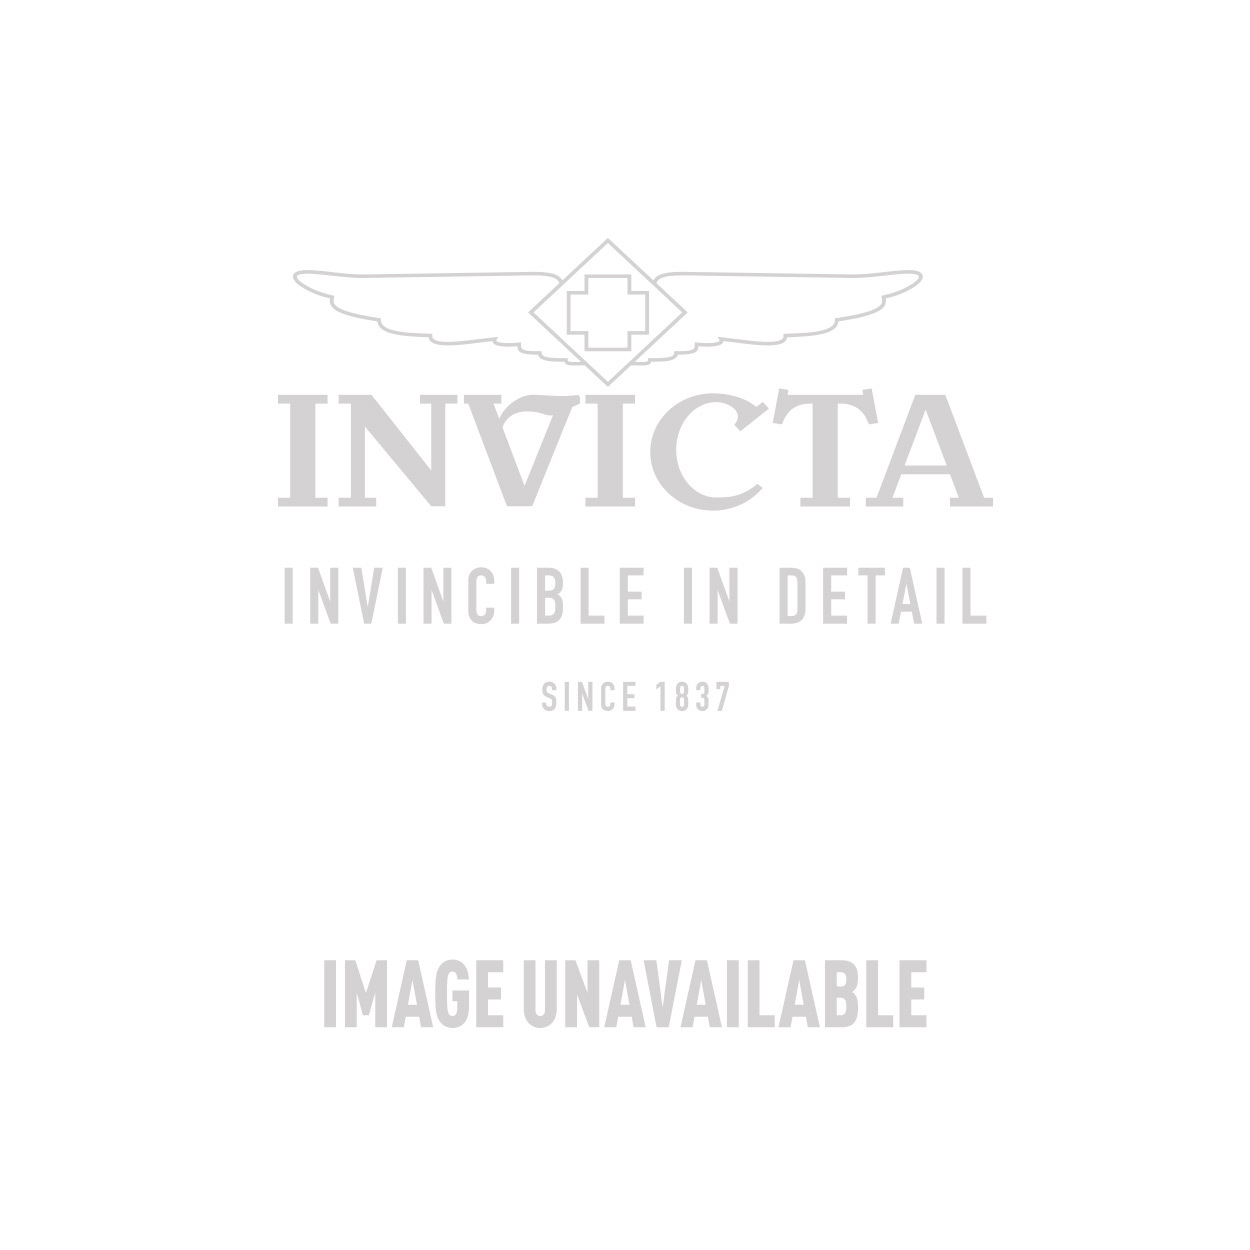 Invicta Angel Swiss Movement Quartz Watch - Gold case with Steel, Gold tone Stainless Steel band - Model 17373